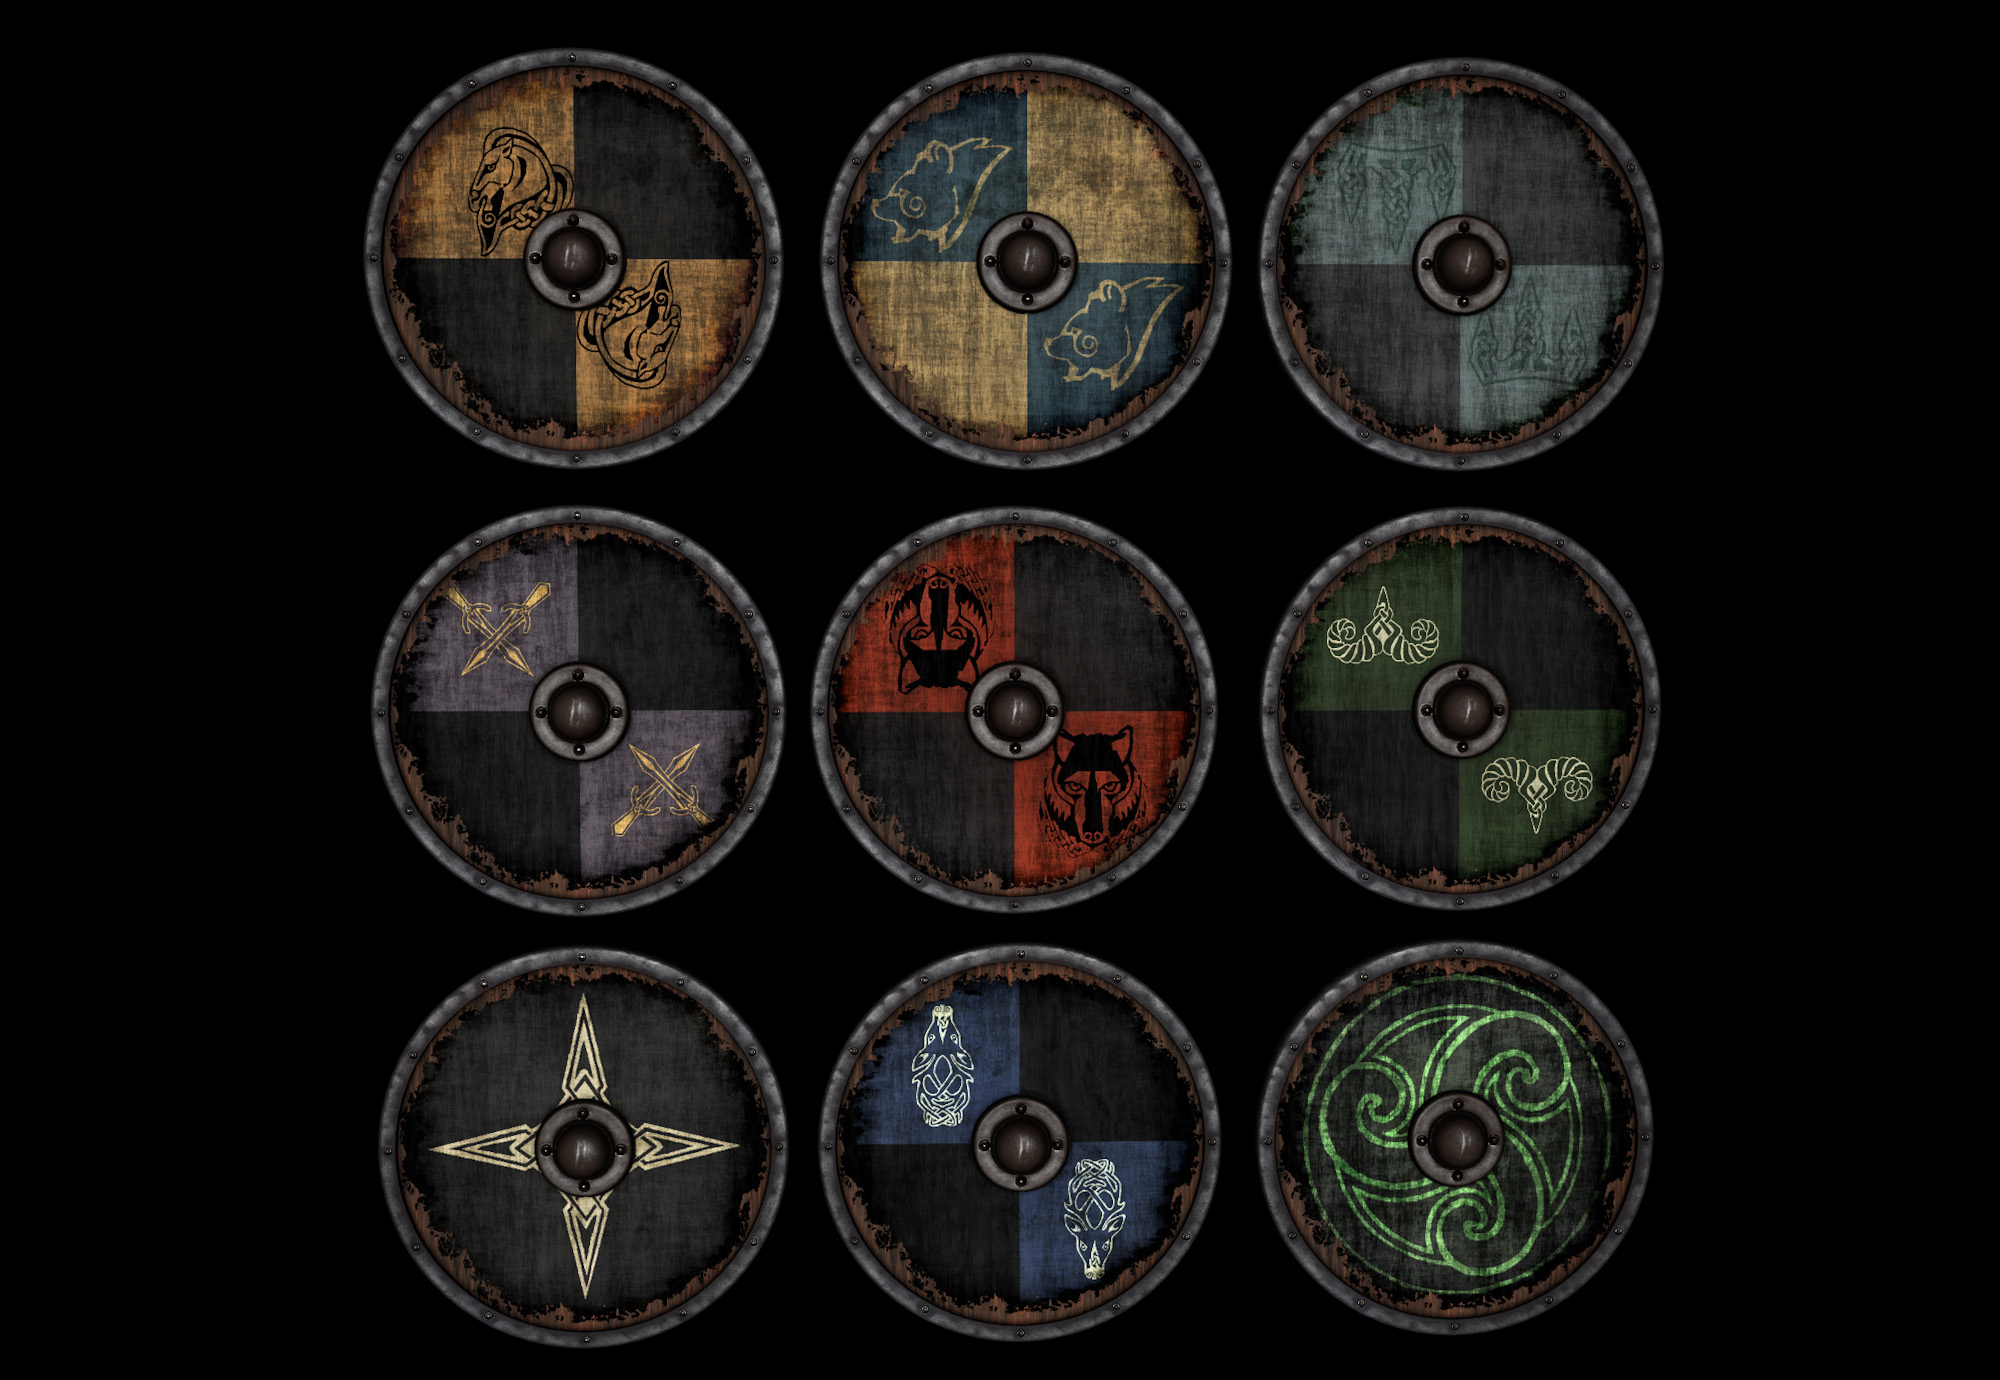 Alternate Town Guard shields